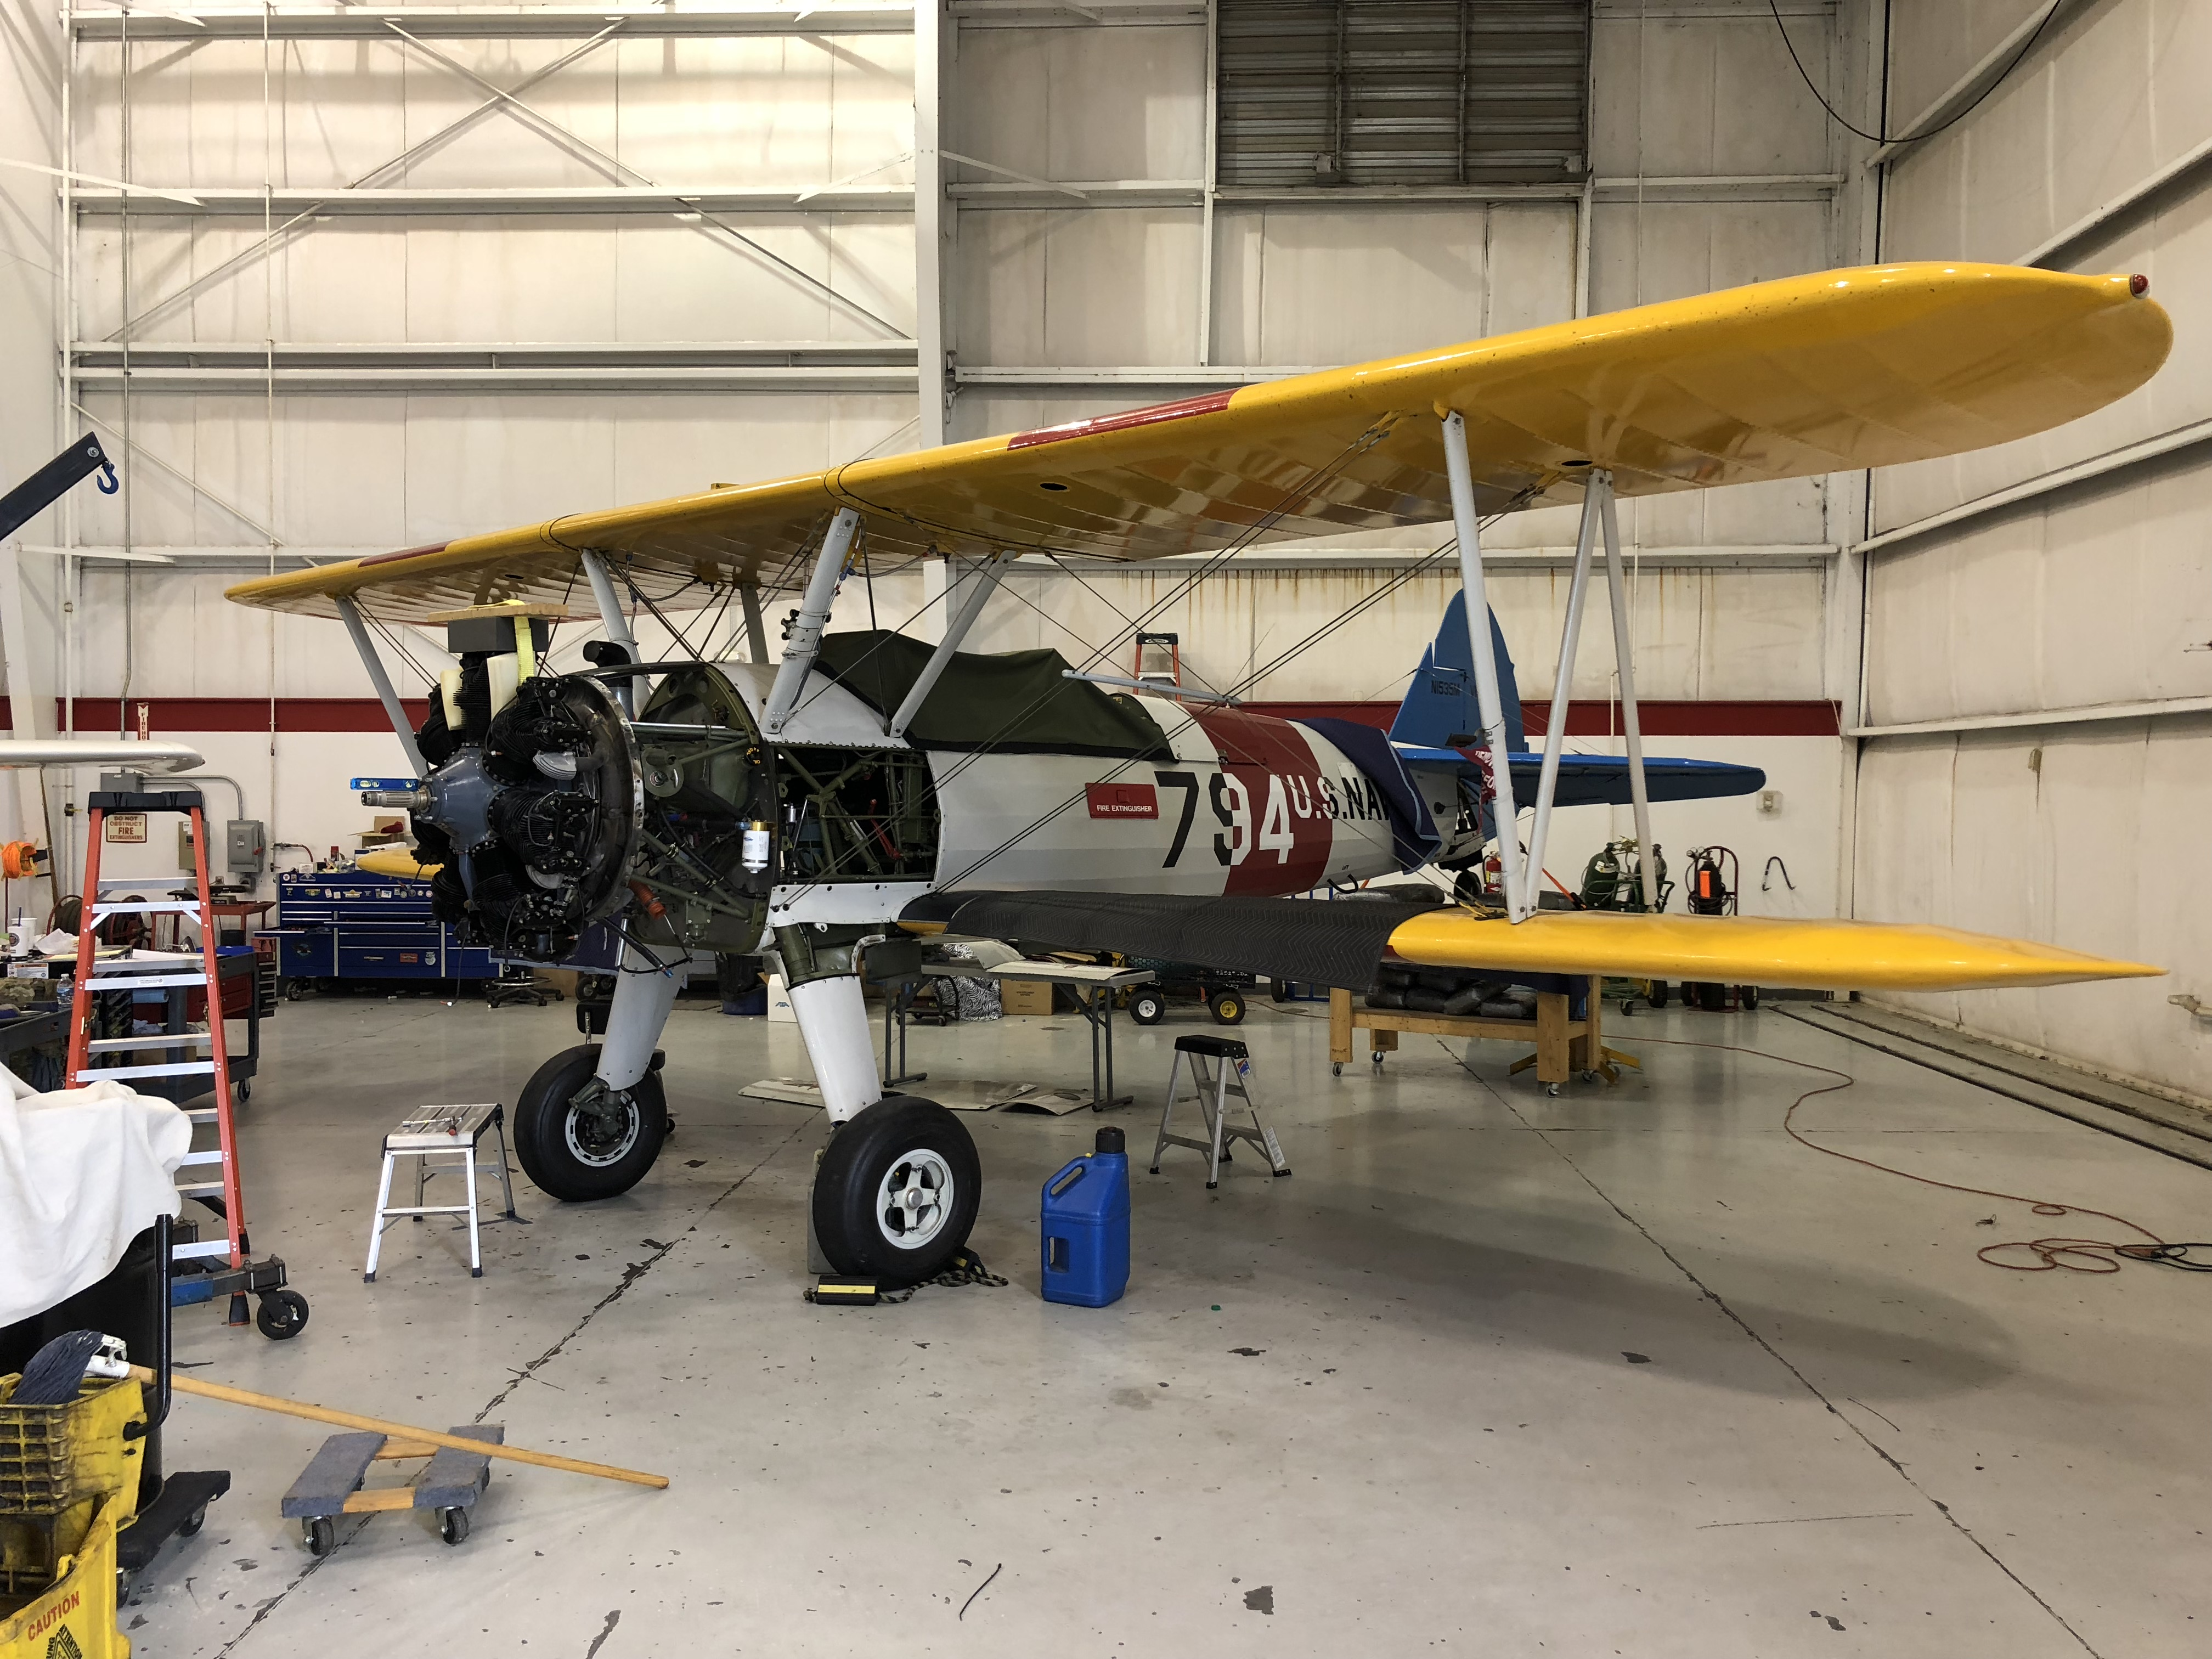 Our Stearman